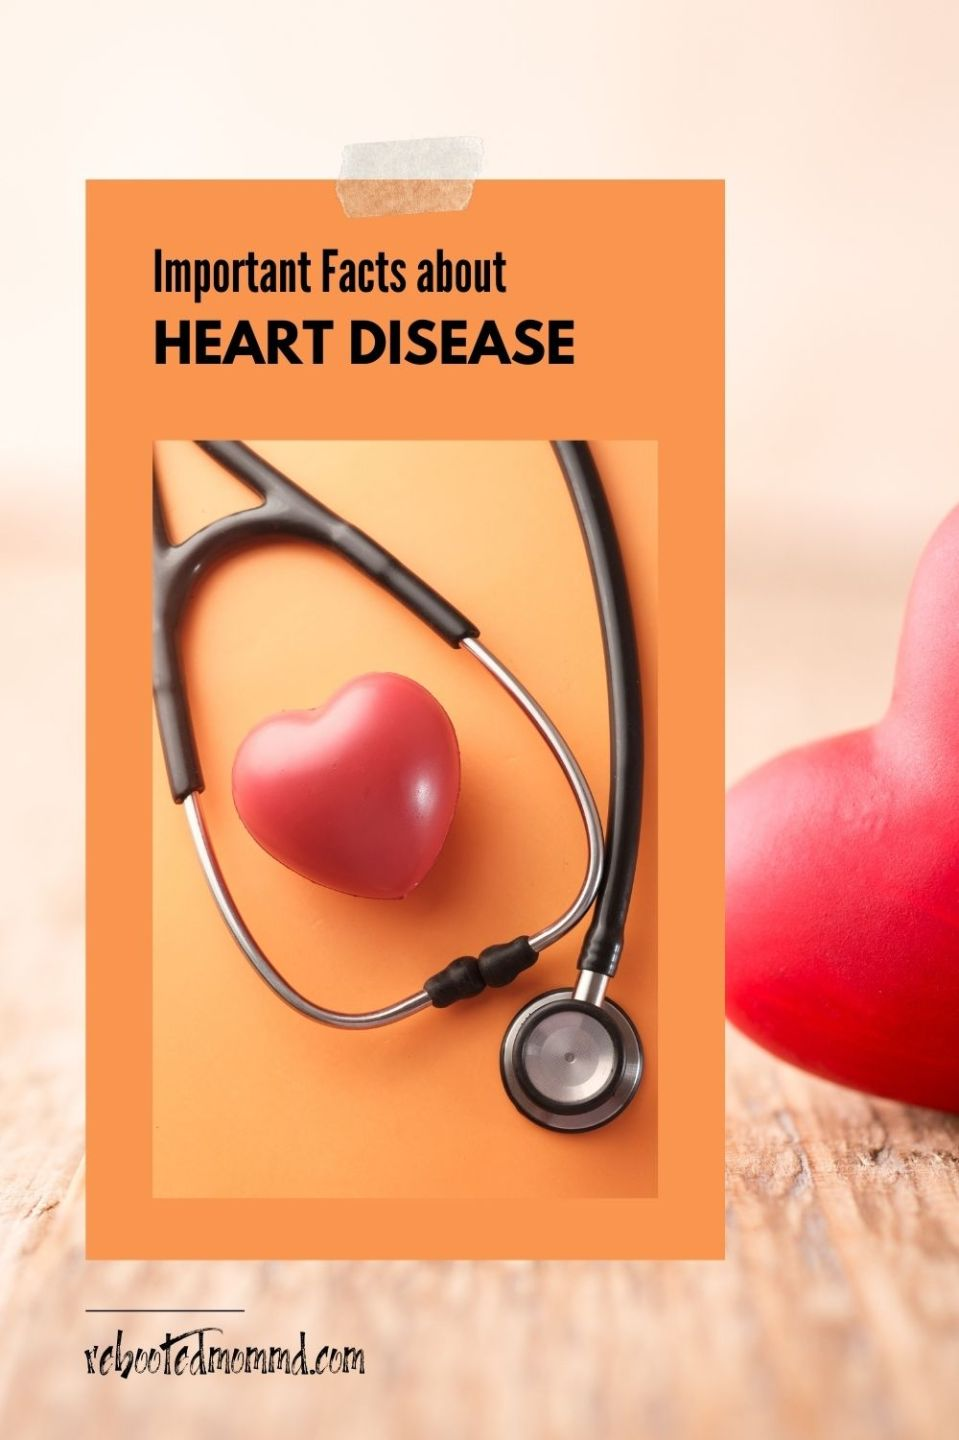 Important Facts About Heart Disease